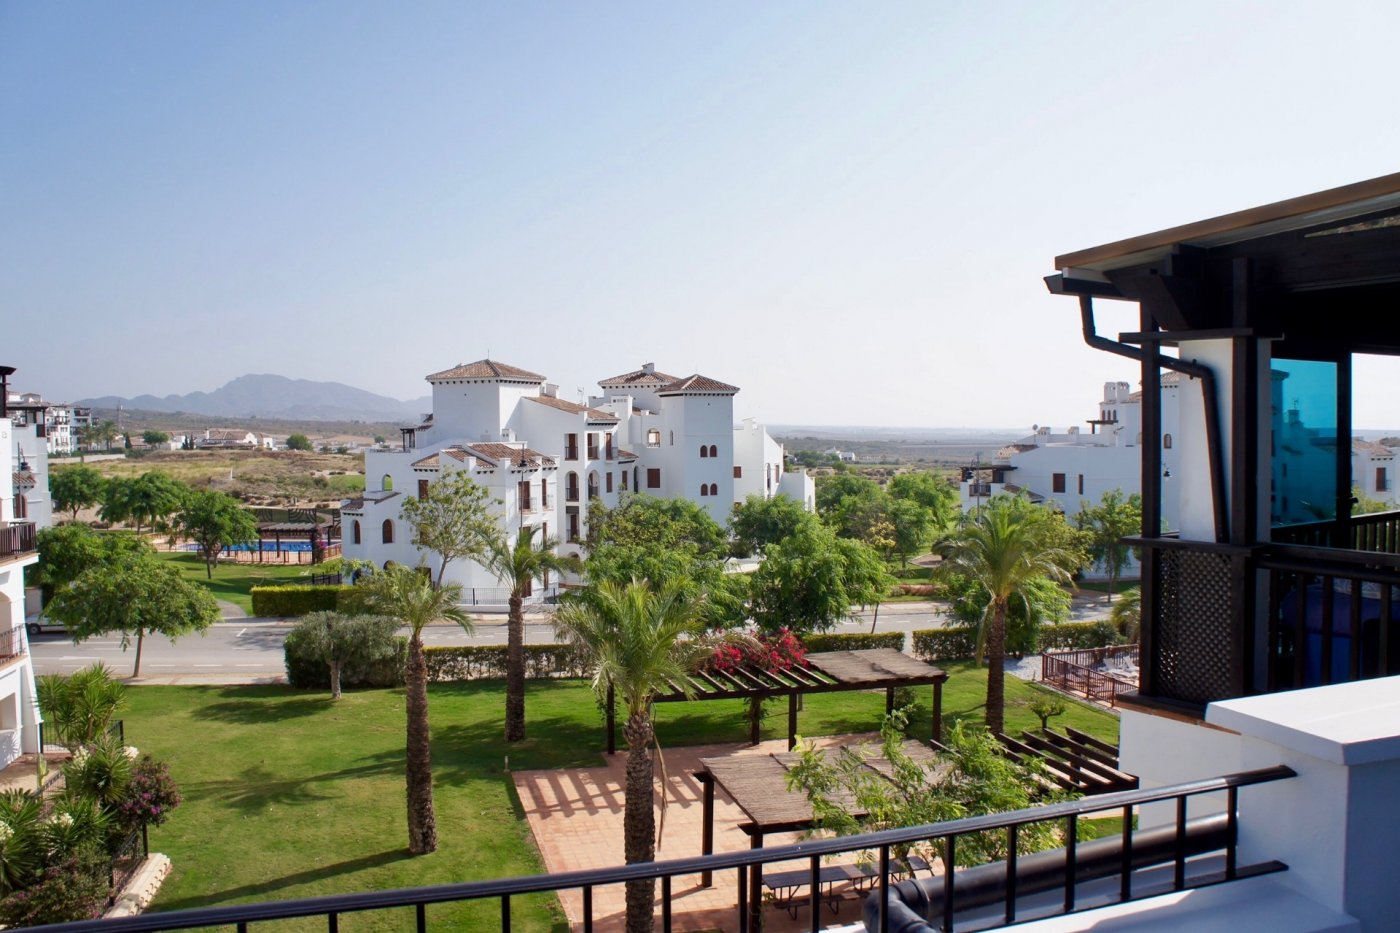 Image 2 Apartment ref 3265-03023 for sale in El Valle Golf Resort Spain - Quality Homes Costa Cálida